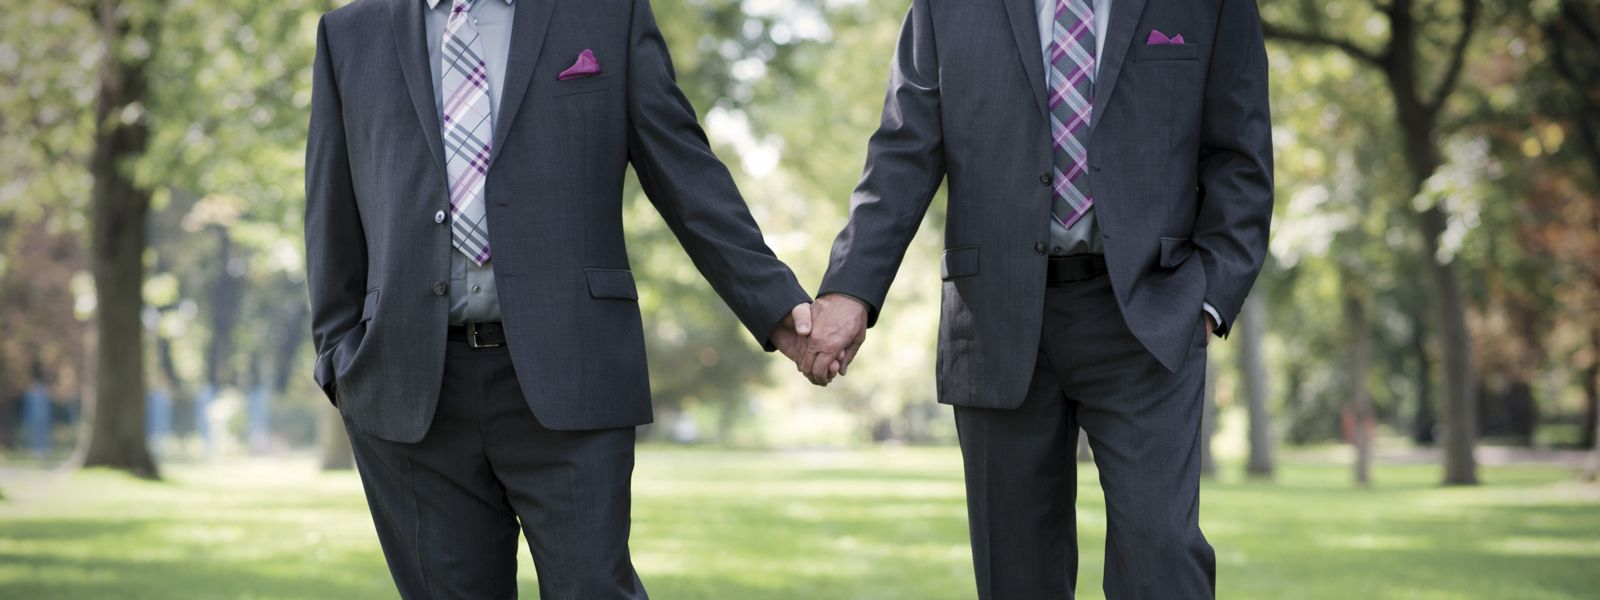 daudlin law banner image of two men holding hands